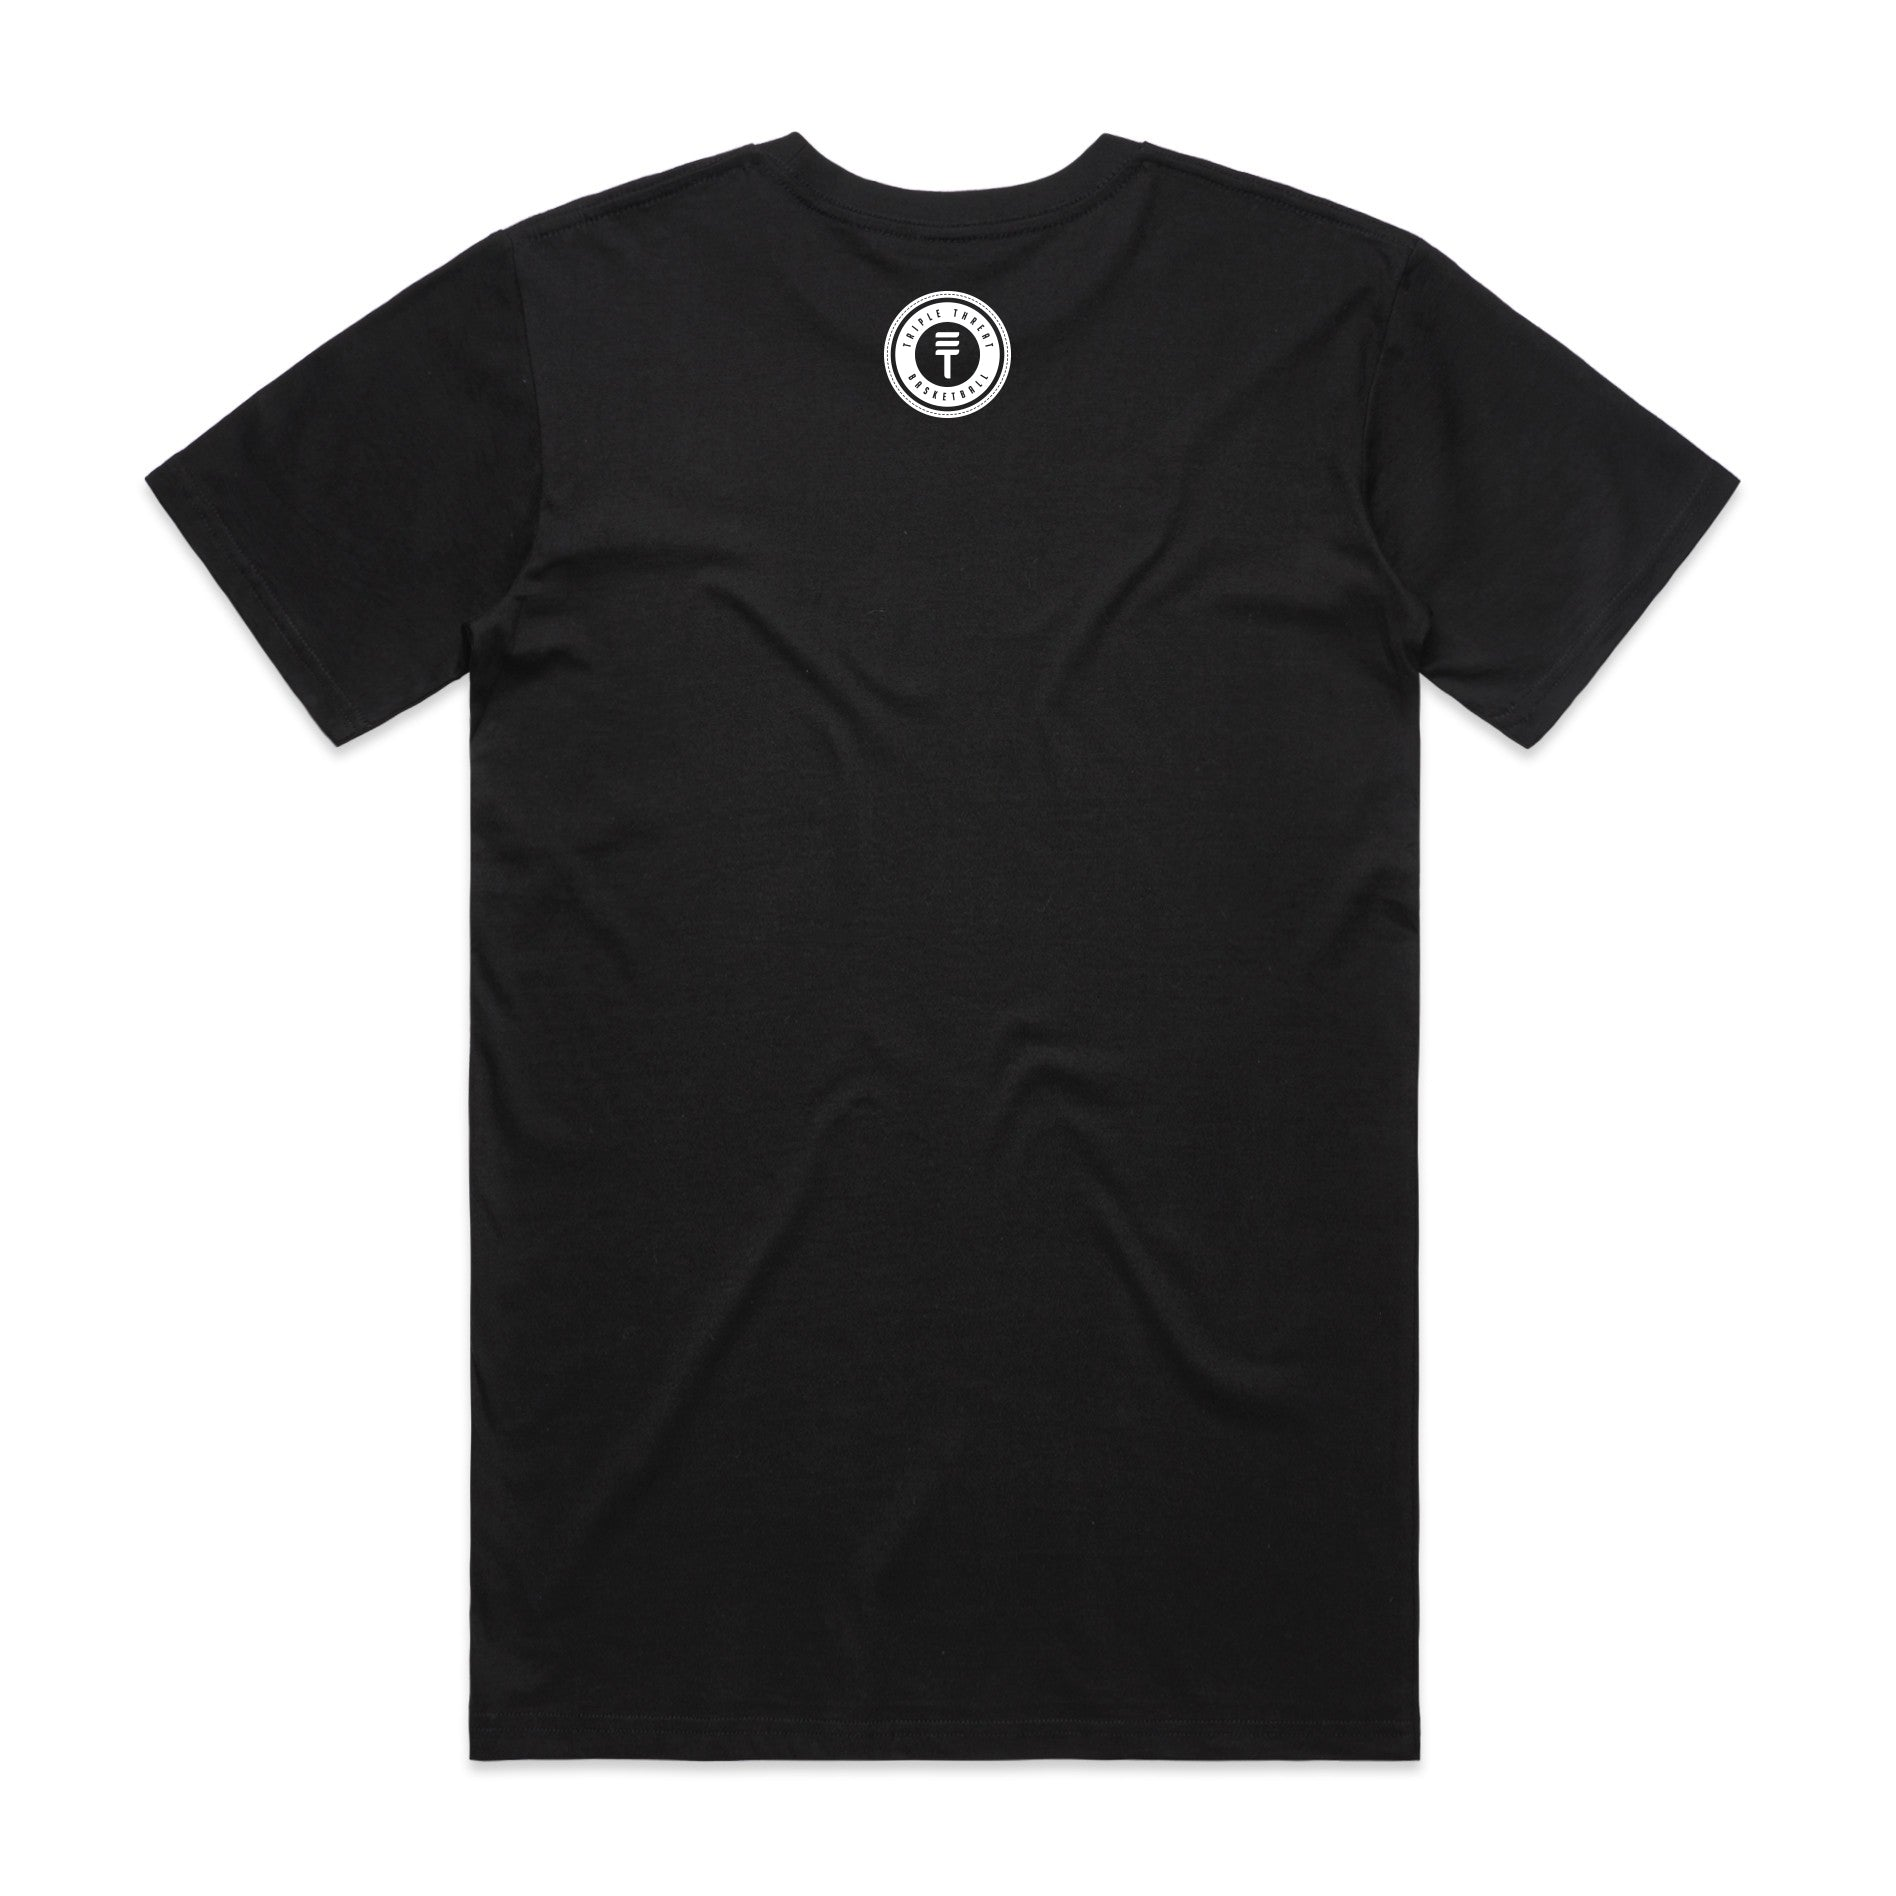 WELLINGTON T-SHIRT - BLACK